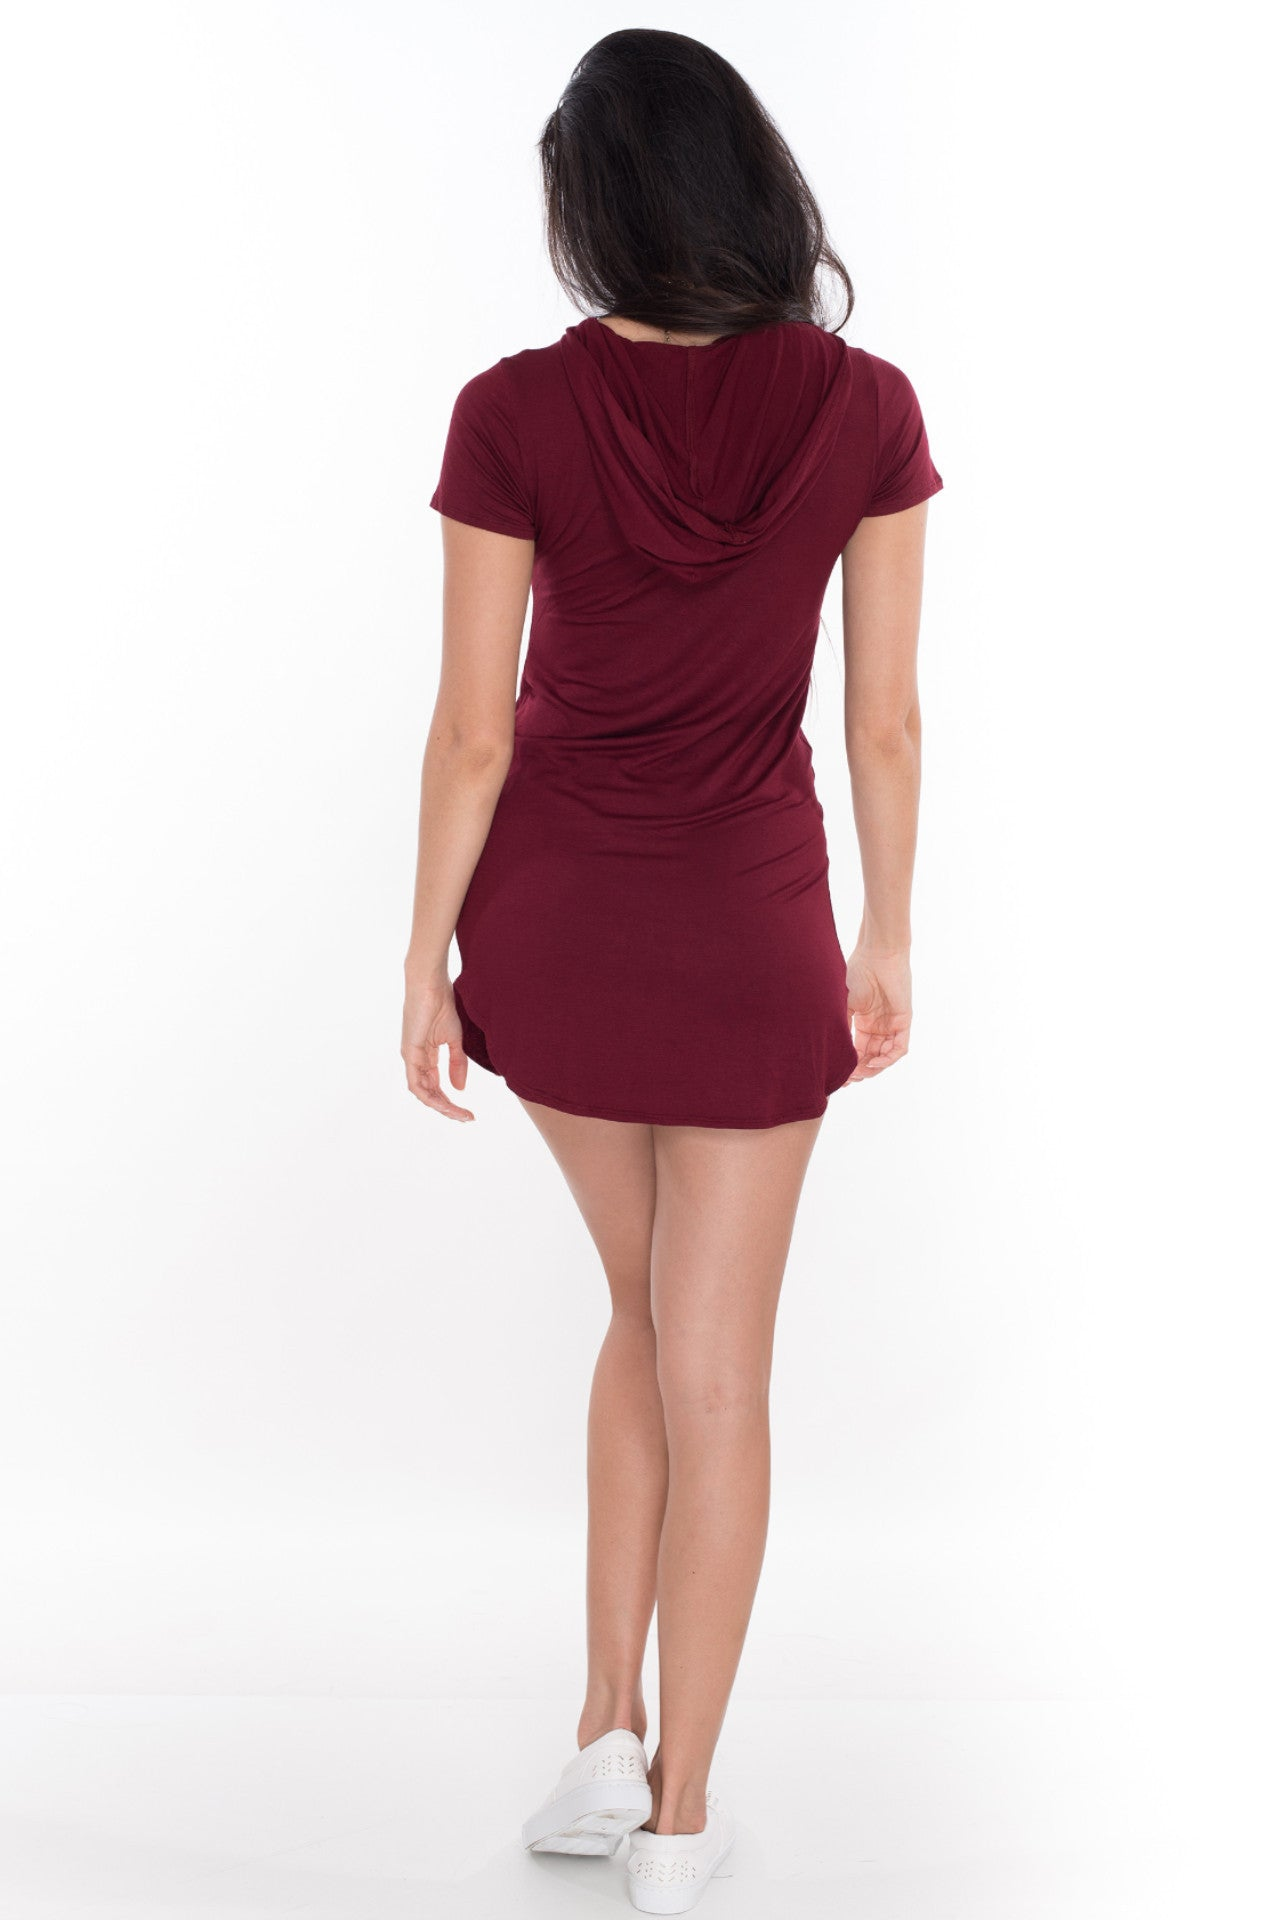 Around The Way Girl Dress - Burgundy